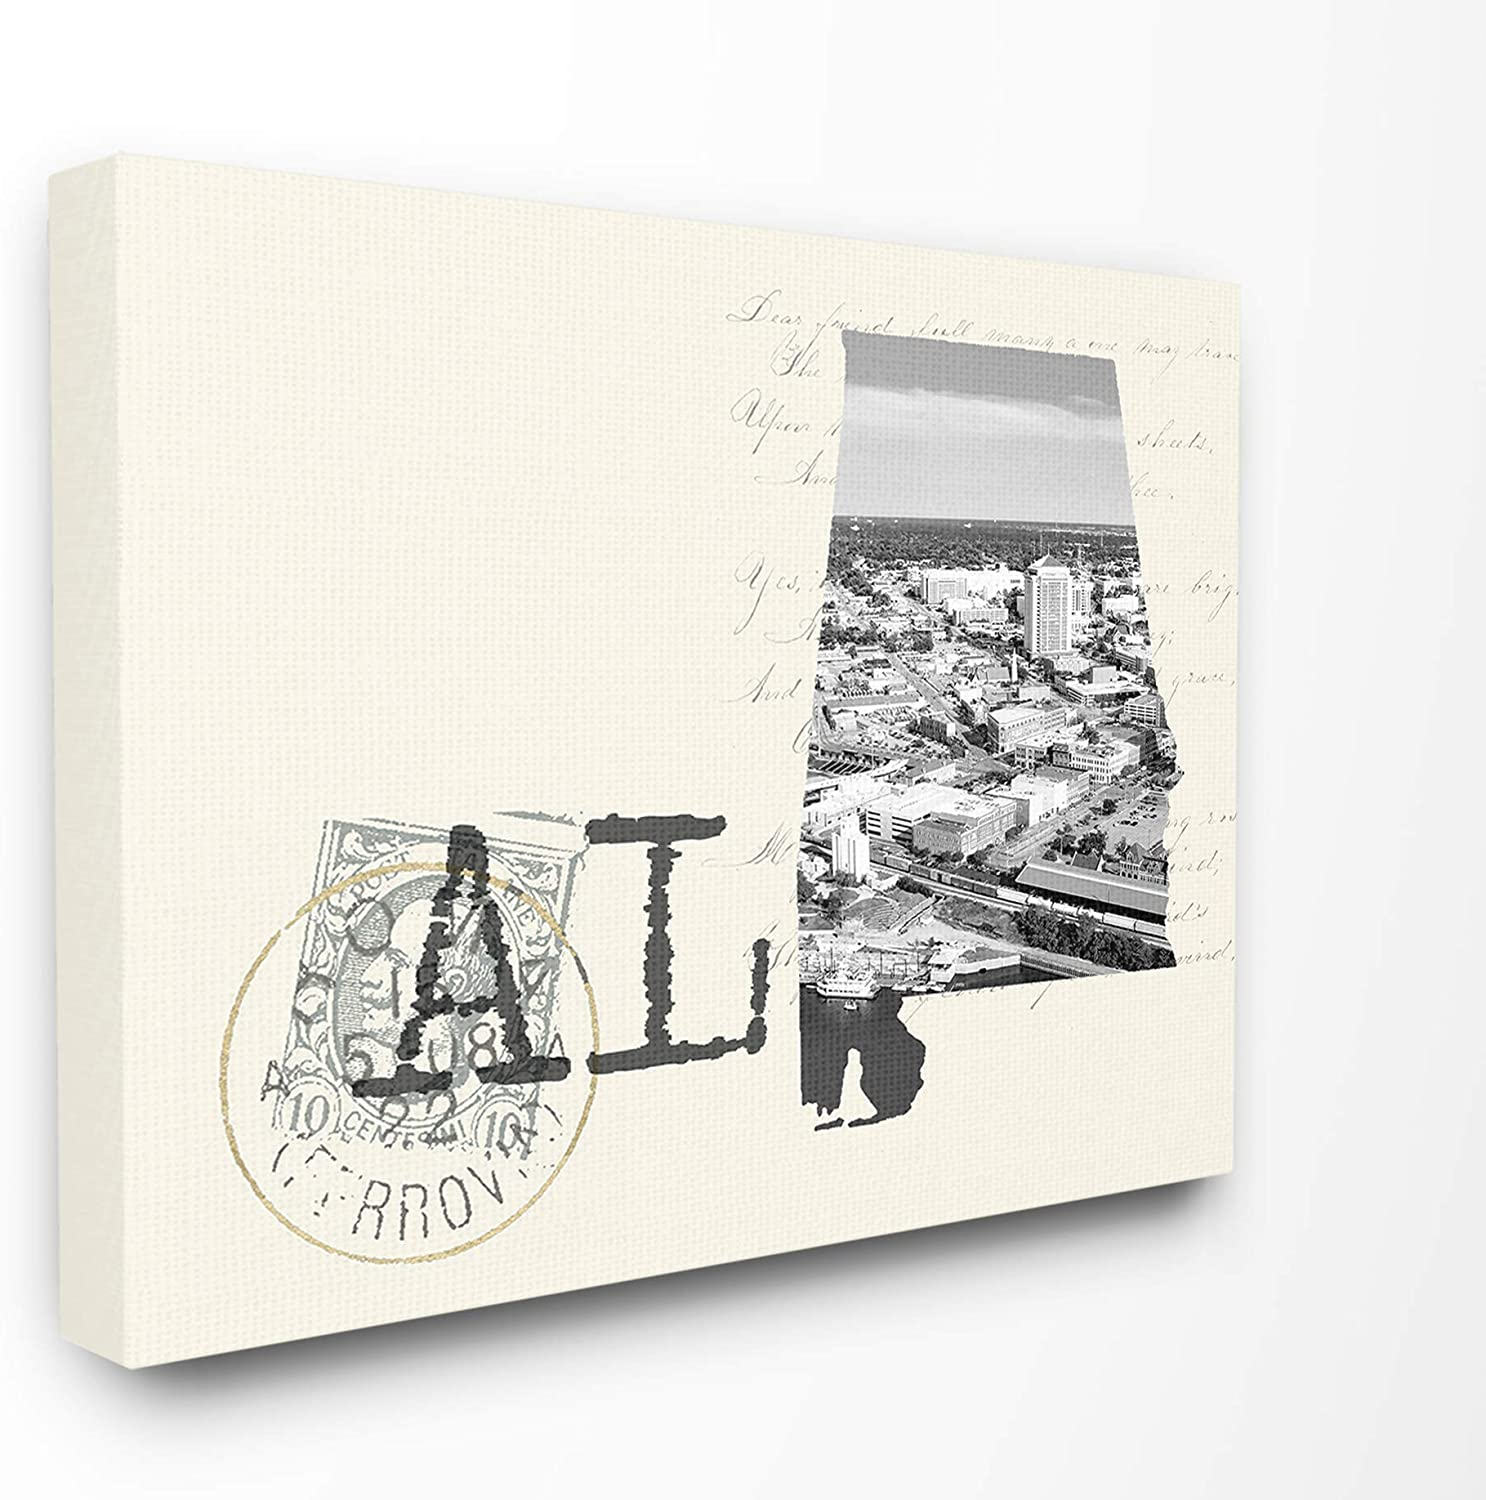 The Stupell Home Decor Alabama Black and White Photograph on Cream Paper Postcard Stretched Canvas Wall Art, Multicolor